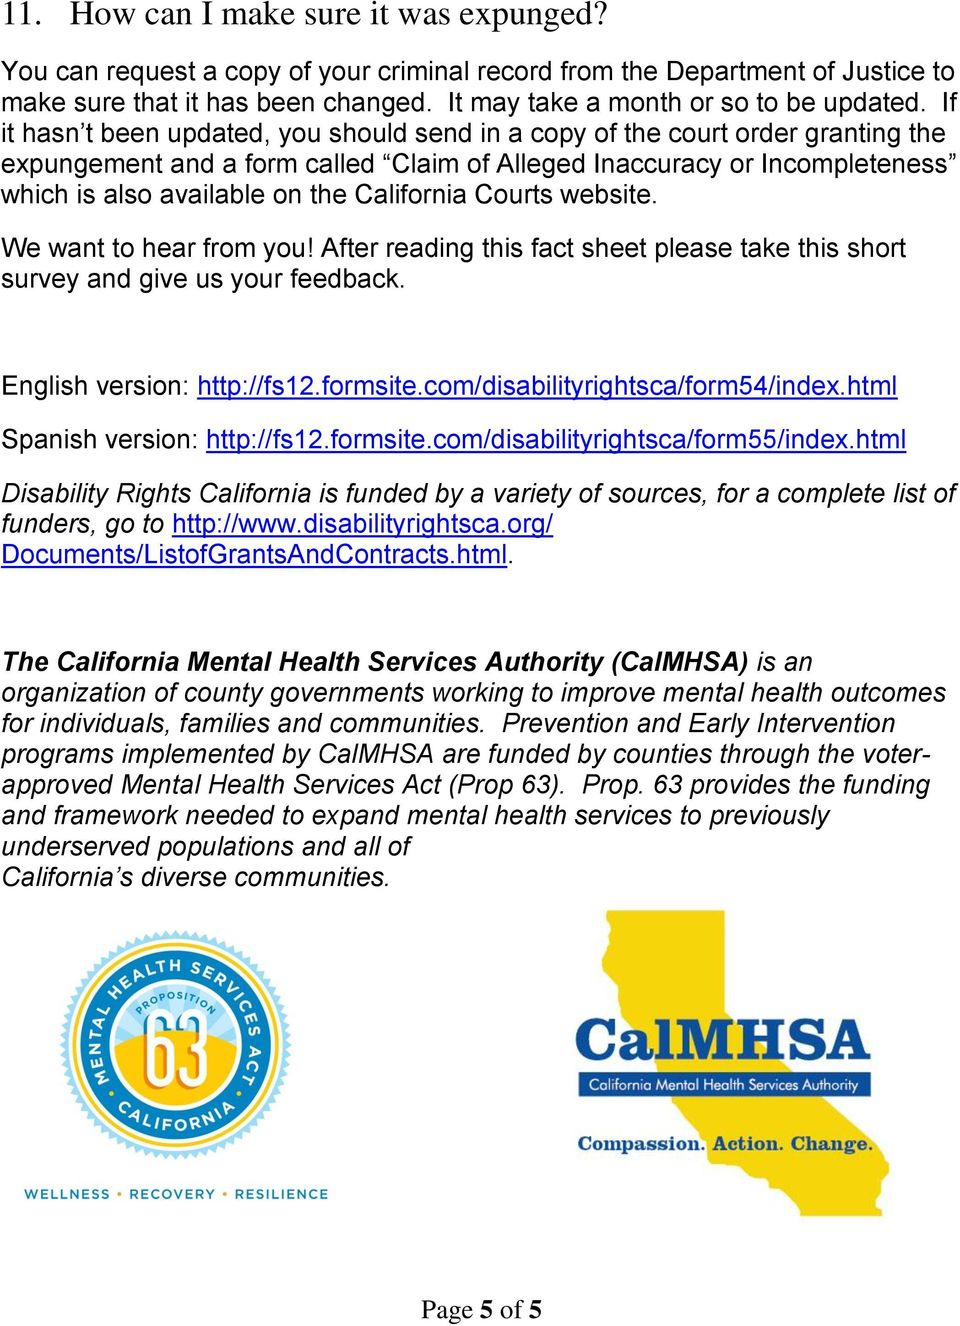 California Courts website. We want to hear from you! After reading this fact sheet please take this short survey and give us your feedback. English version: http://fs12.formsite.